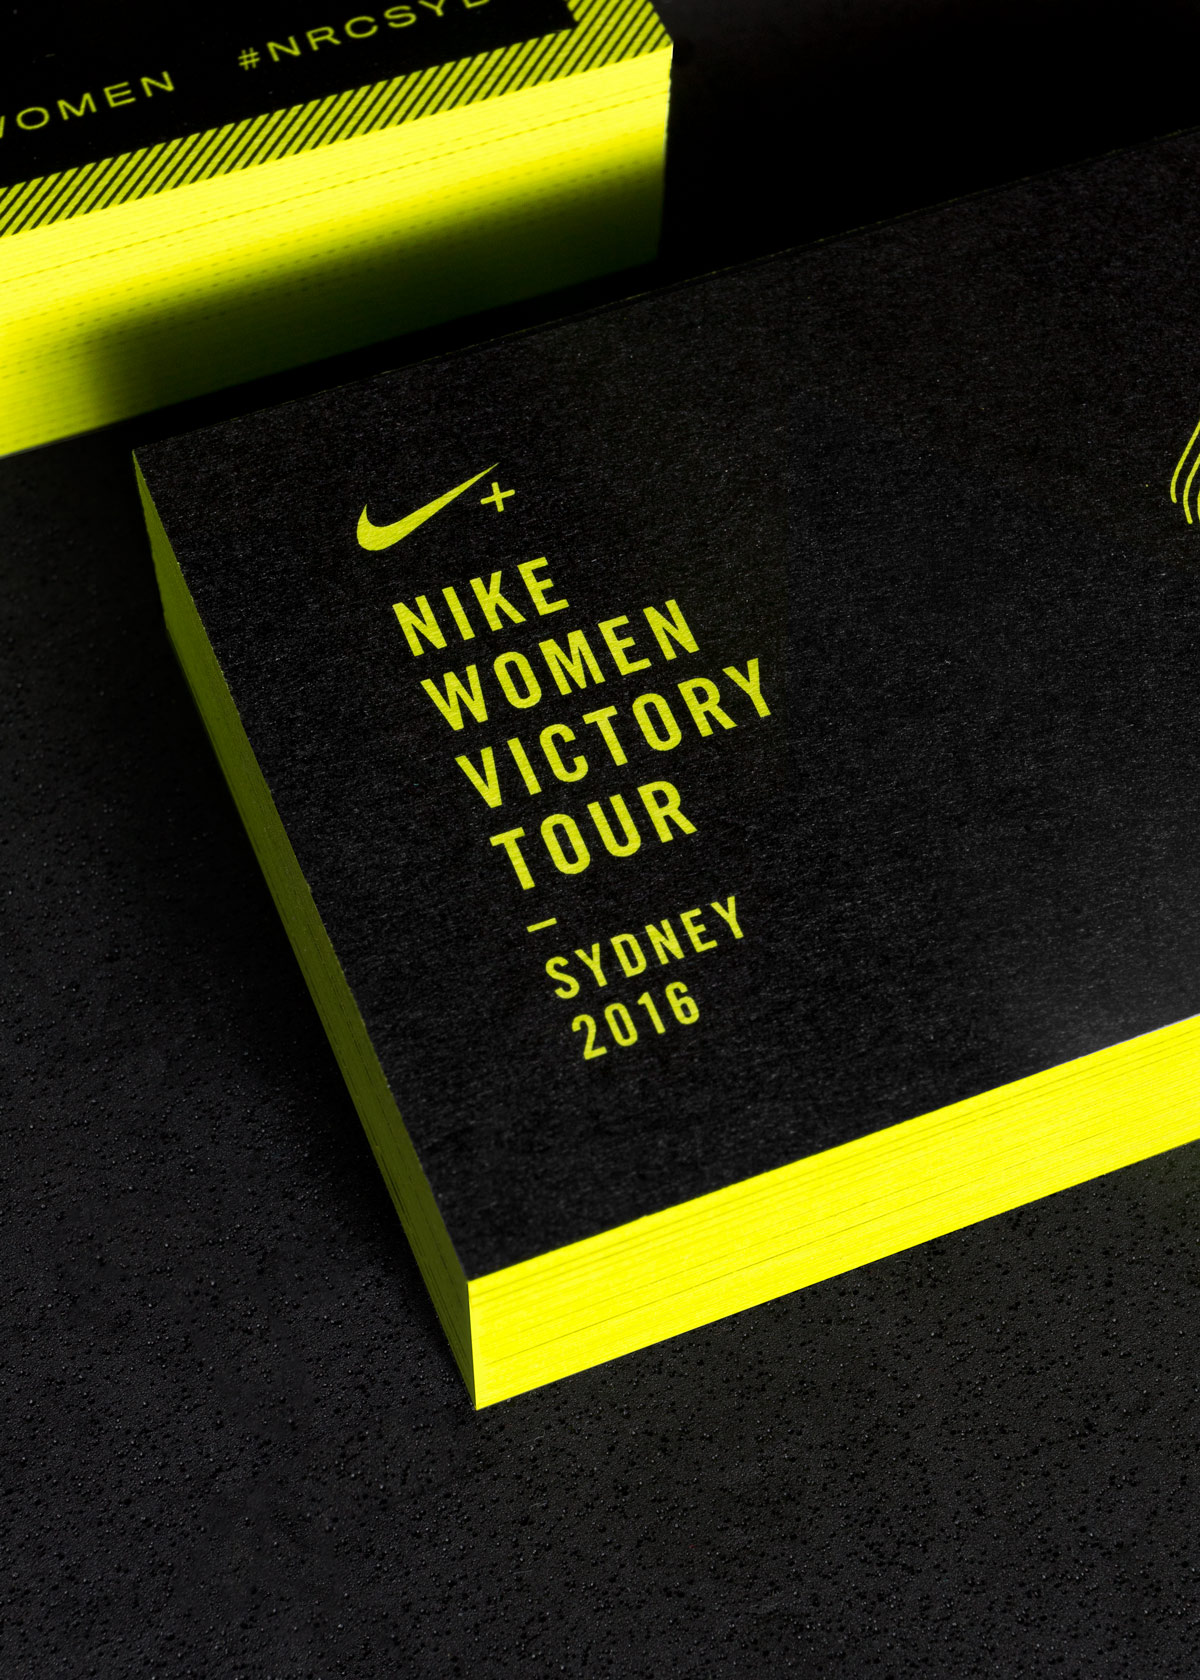 Nike women victory tour 2016 business cards confetti confetti contact colourmoves